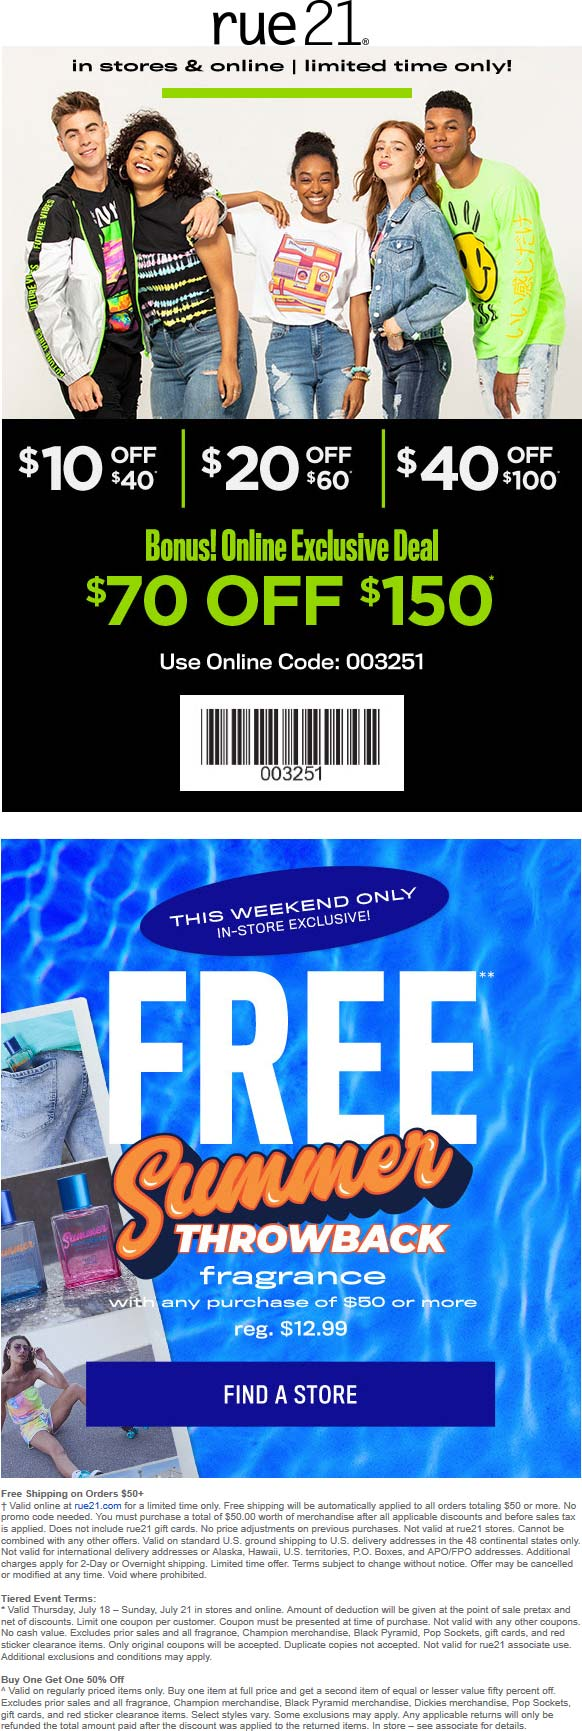 Rue21.com Promo Coupon $10 off $40 & more at rue21, or online via promo code 003251